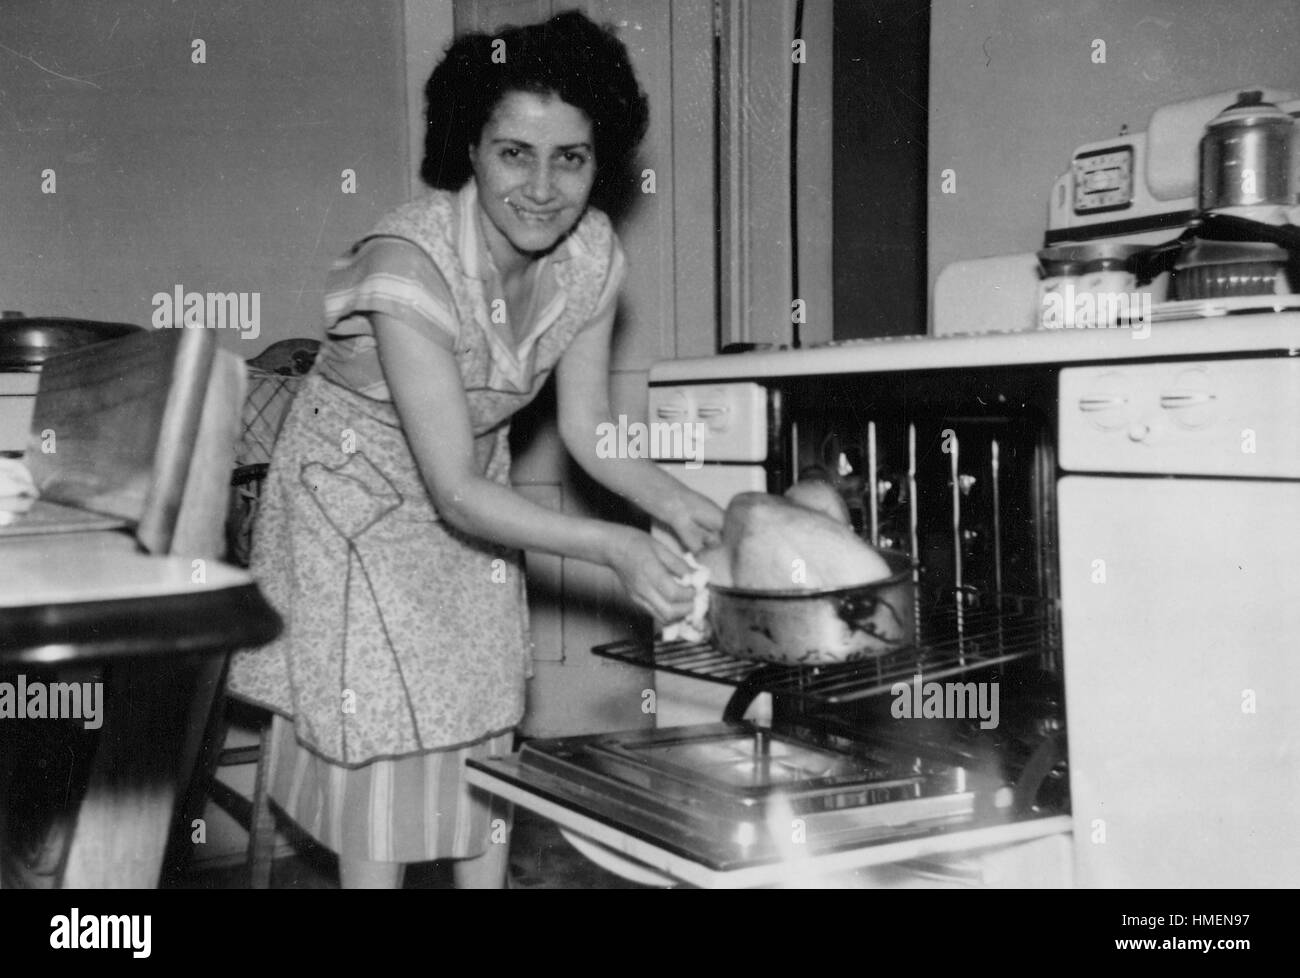 Thanksgiving day, a young woman in an apron standing in her kitchen and placing a turkey on a roasting pan into - Stock Image